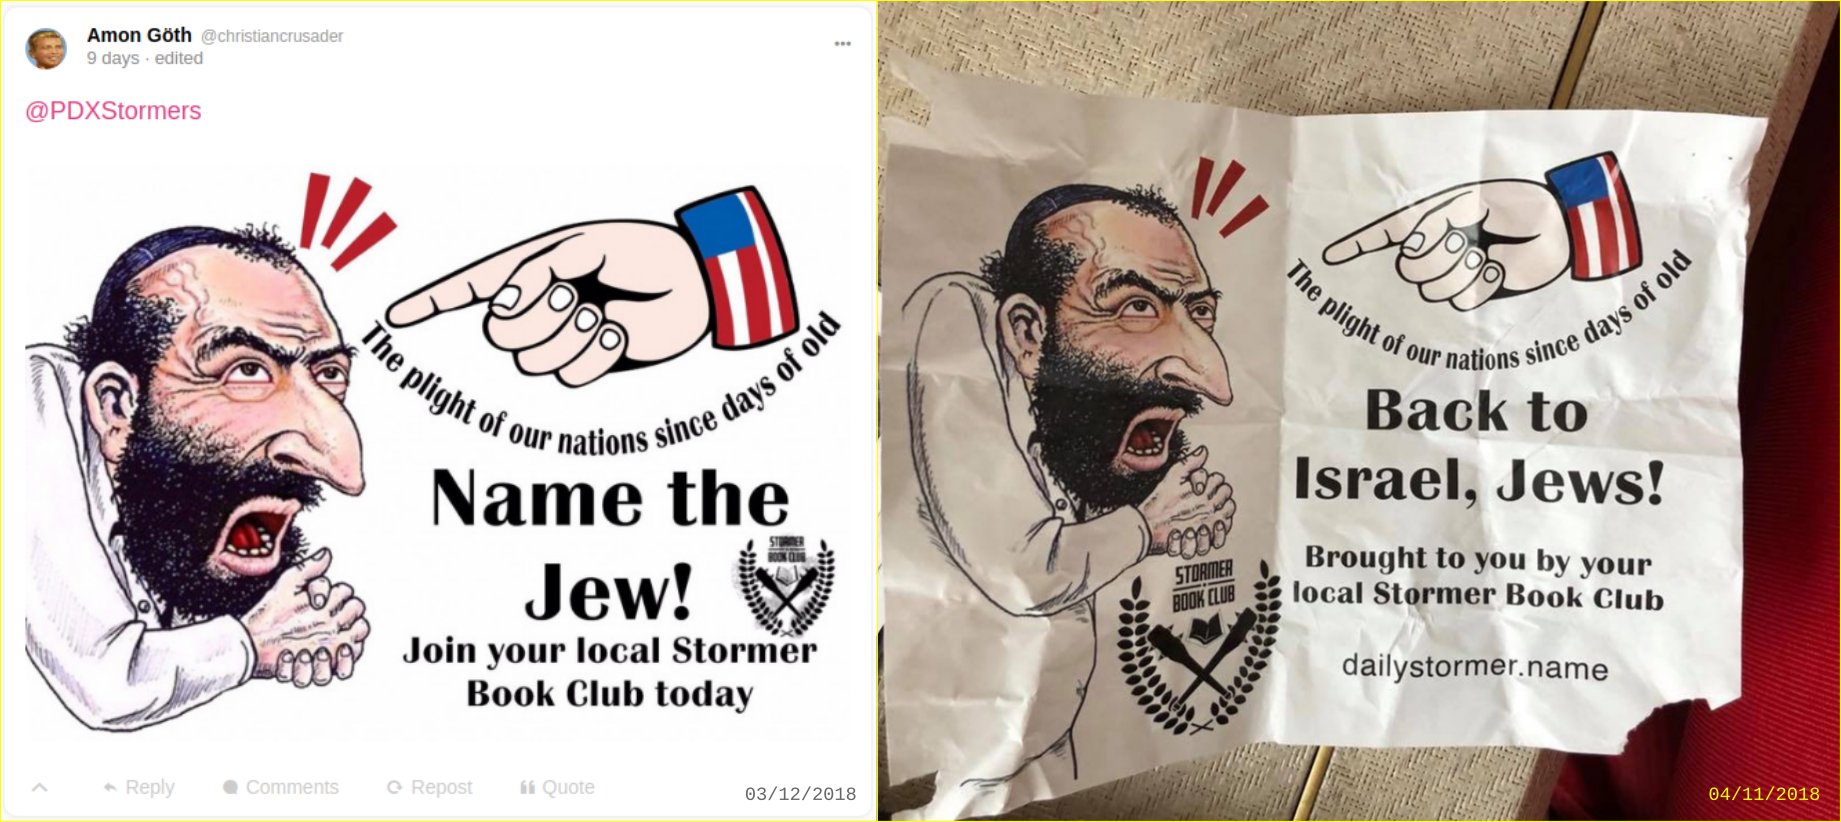 Anti-Semitic flyers posted by PDX Stormers at Chabad center PDX